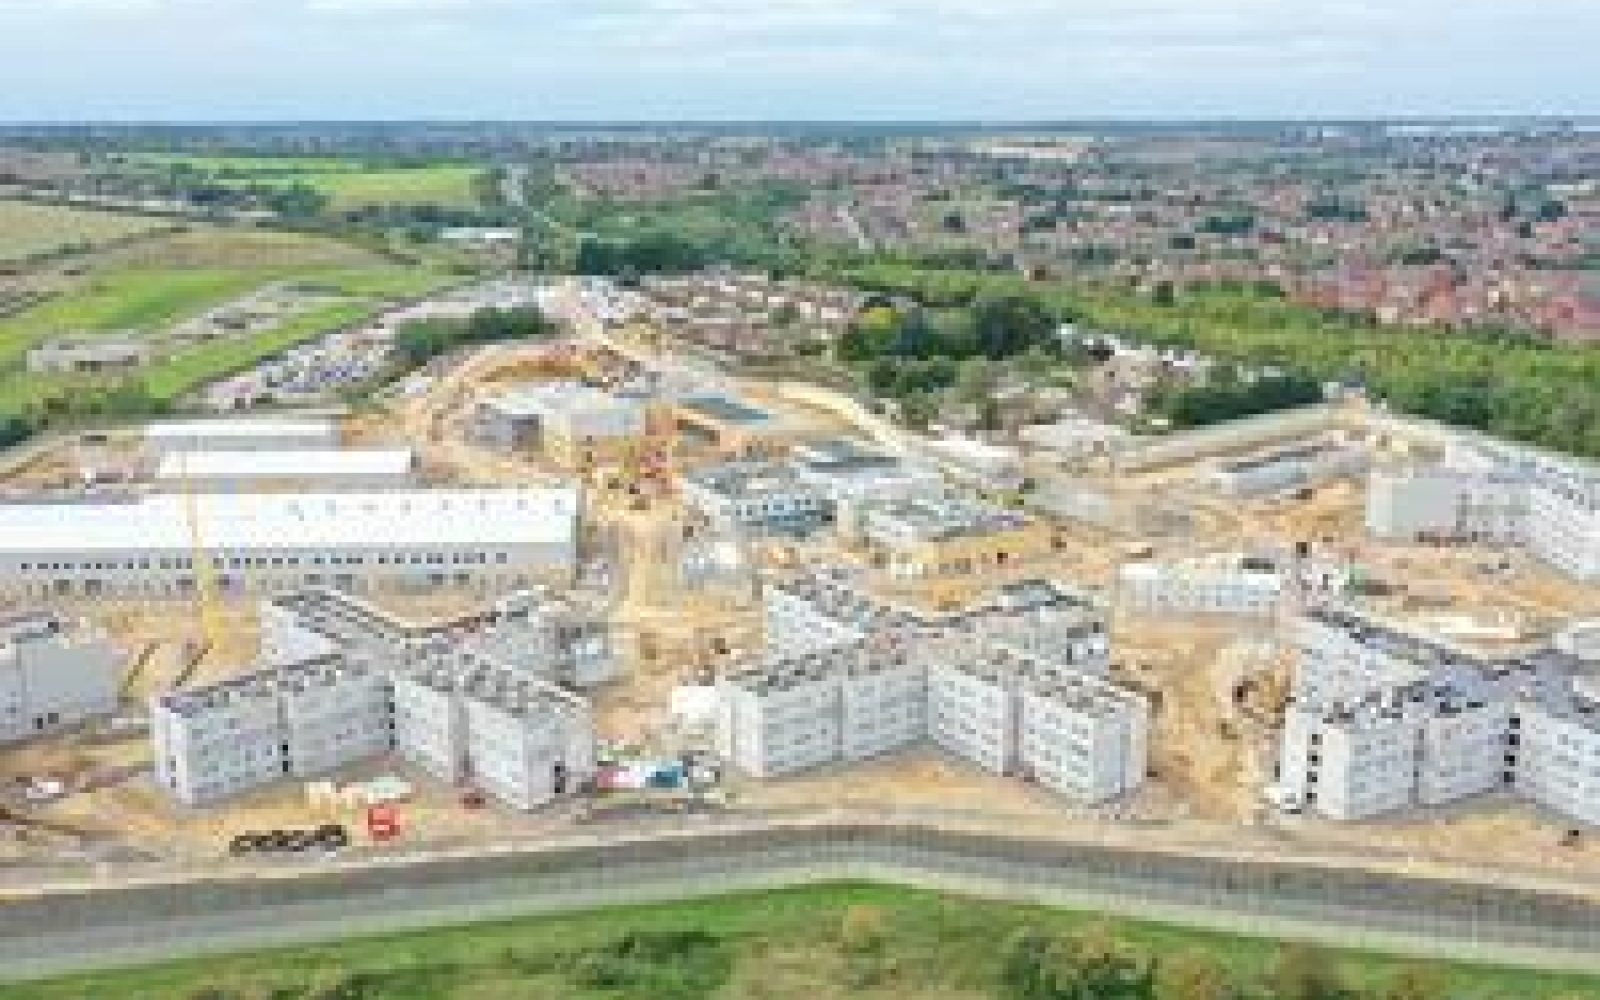 Like other prisons under construction such as HMP Five Wells in Wellingborough (pictured), the new prisons will use recycled materials to reduce carbon. Image: gov.uk.